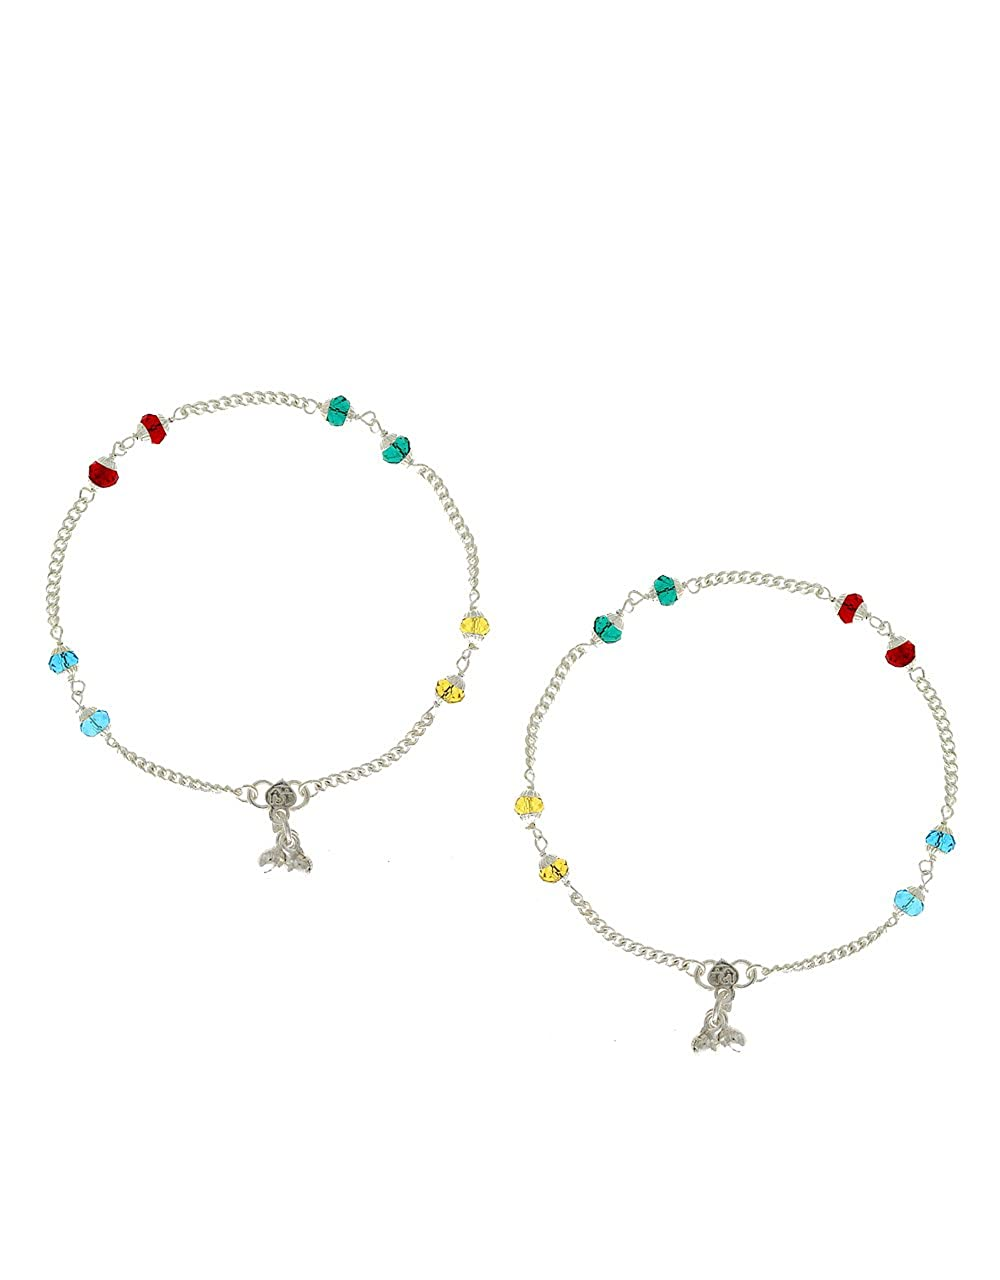 Anuradha Art Multi Colour Styled with Crystal Beads Wonderful Anklets//Payal for Women//Girls